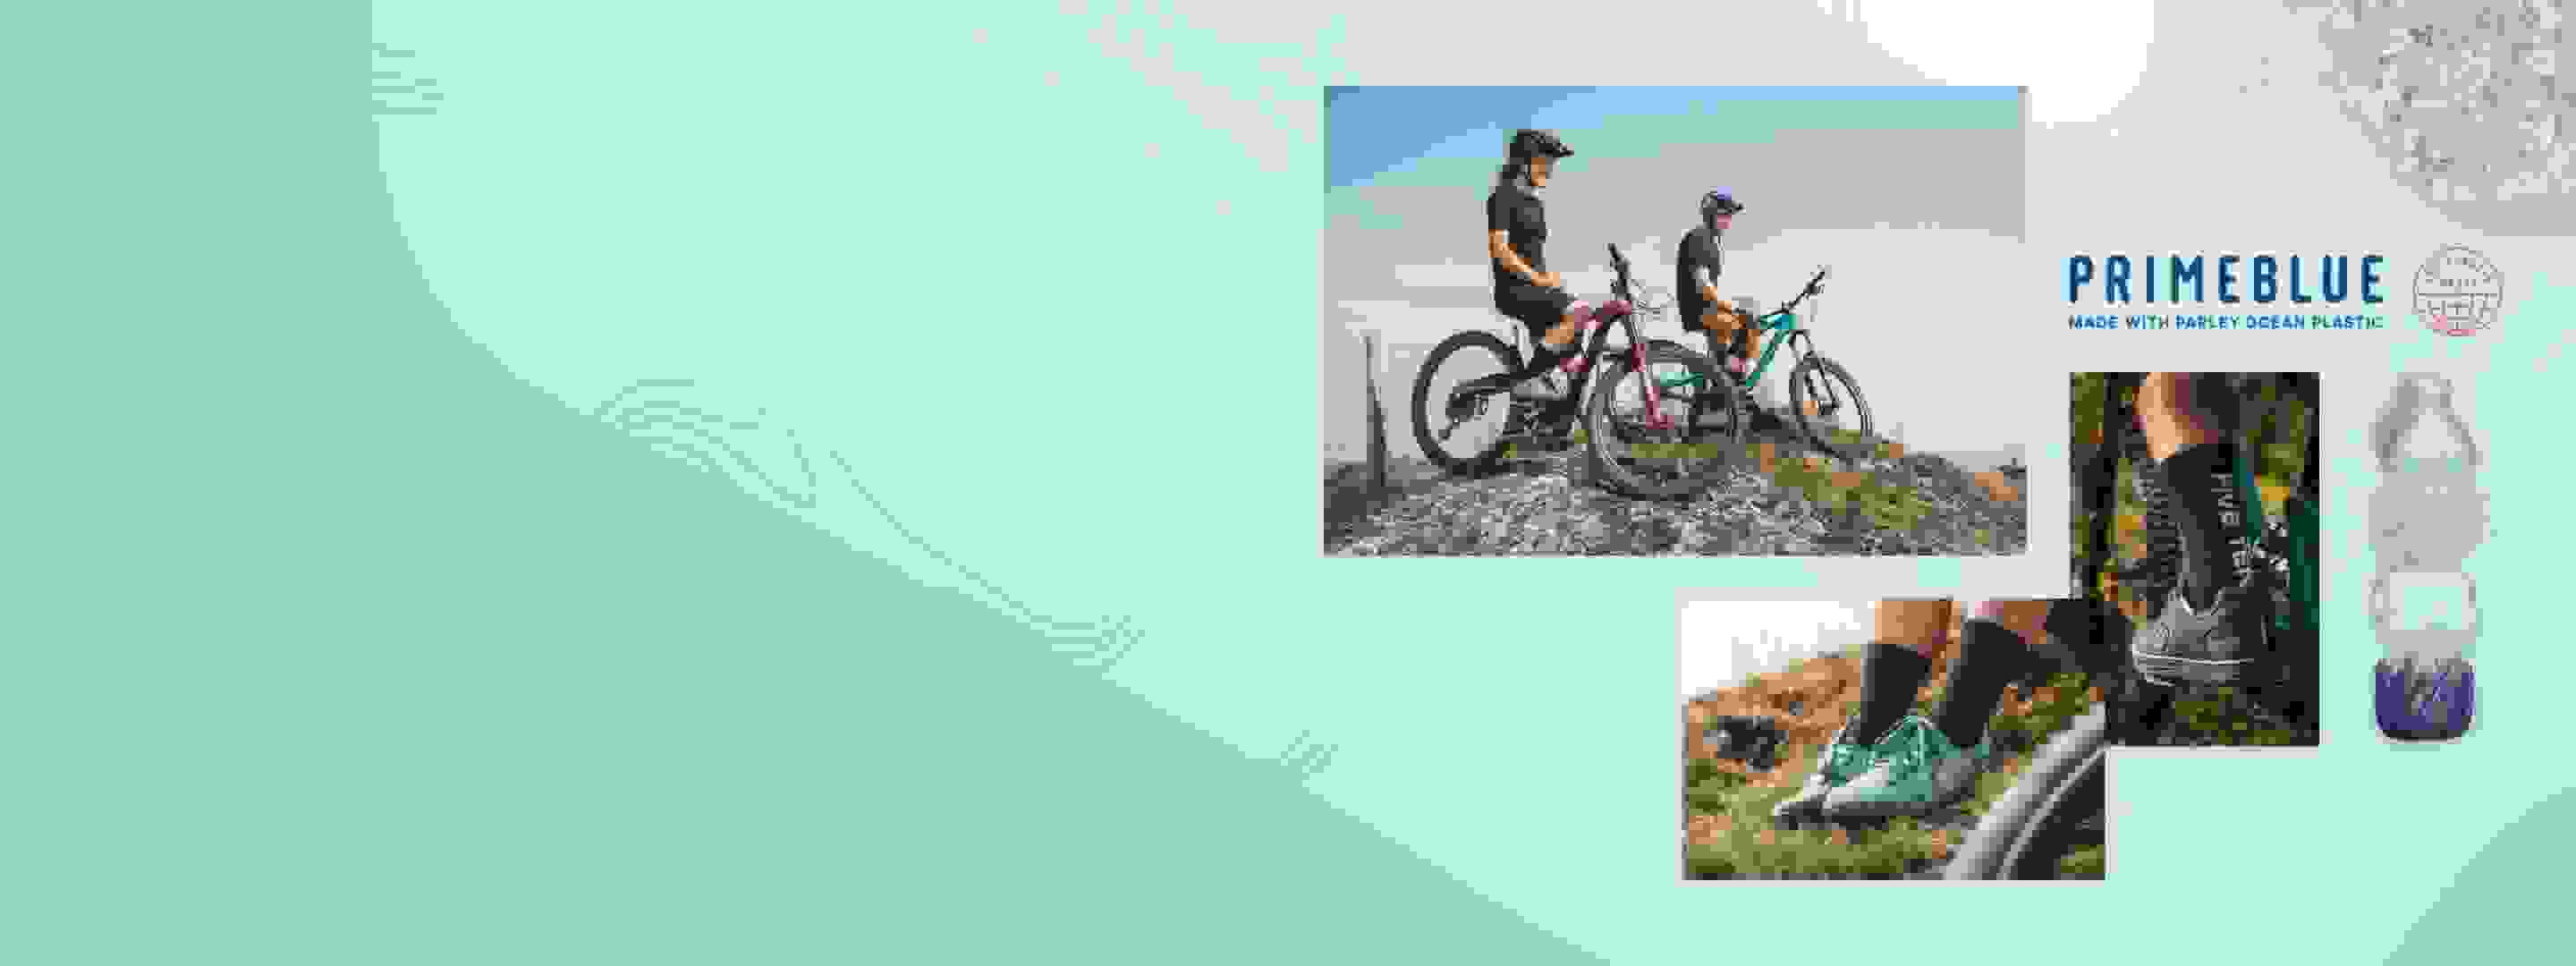 Men_and_Women_Mountain_Biking_wearing_adidas_Primeblue_recycled_plastic_outfit